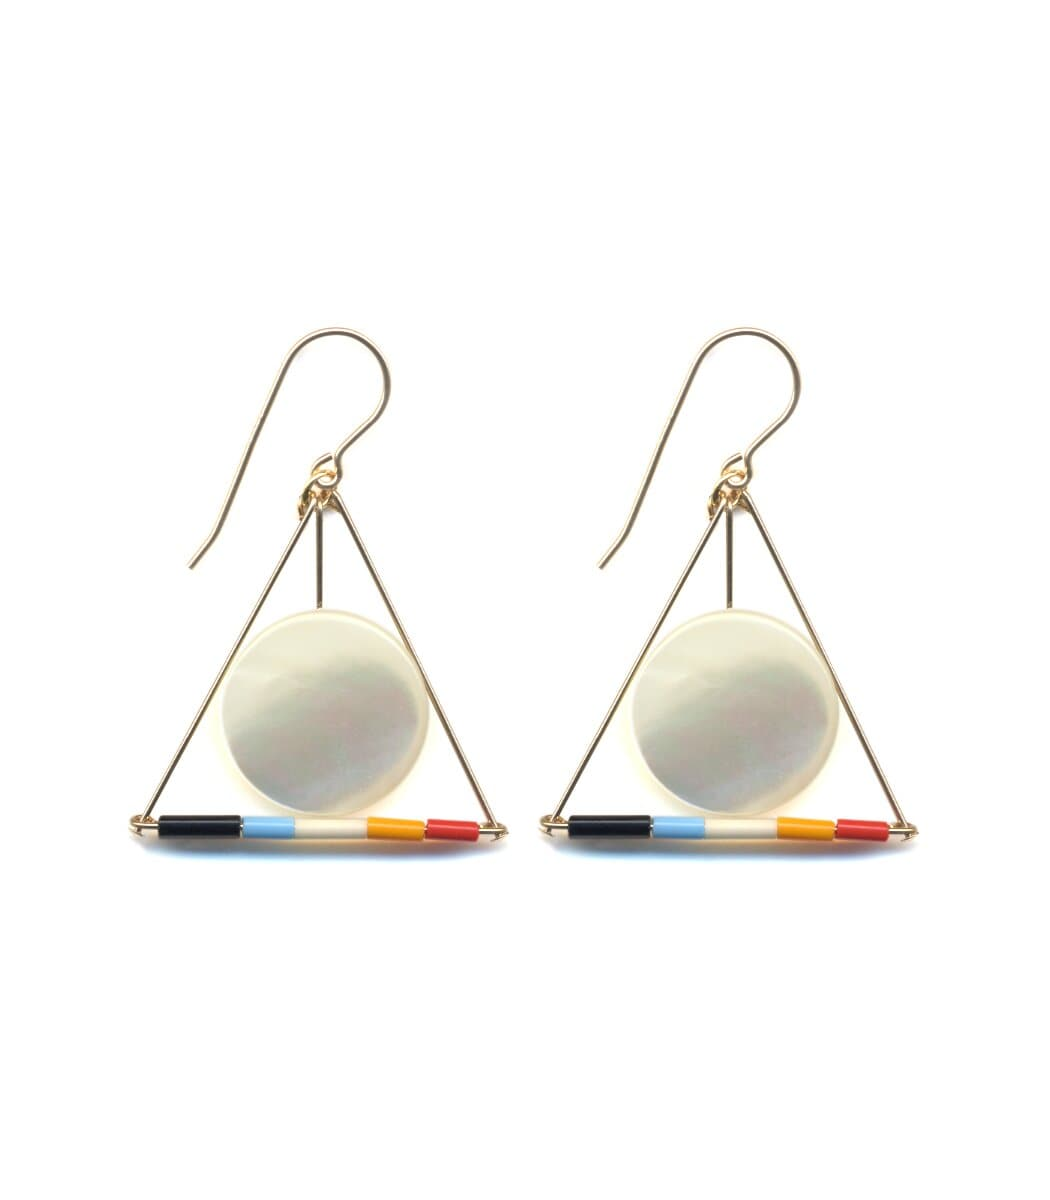 Irk Jewelry I. Ronni Kappos E1637 Hilma Triangle Drop Earrings